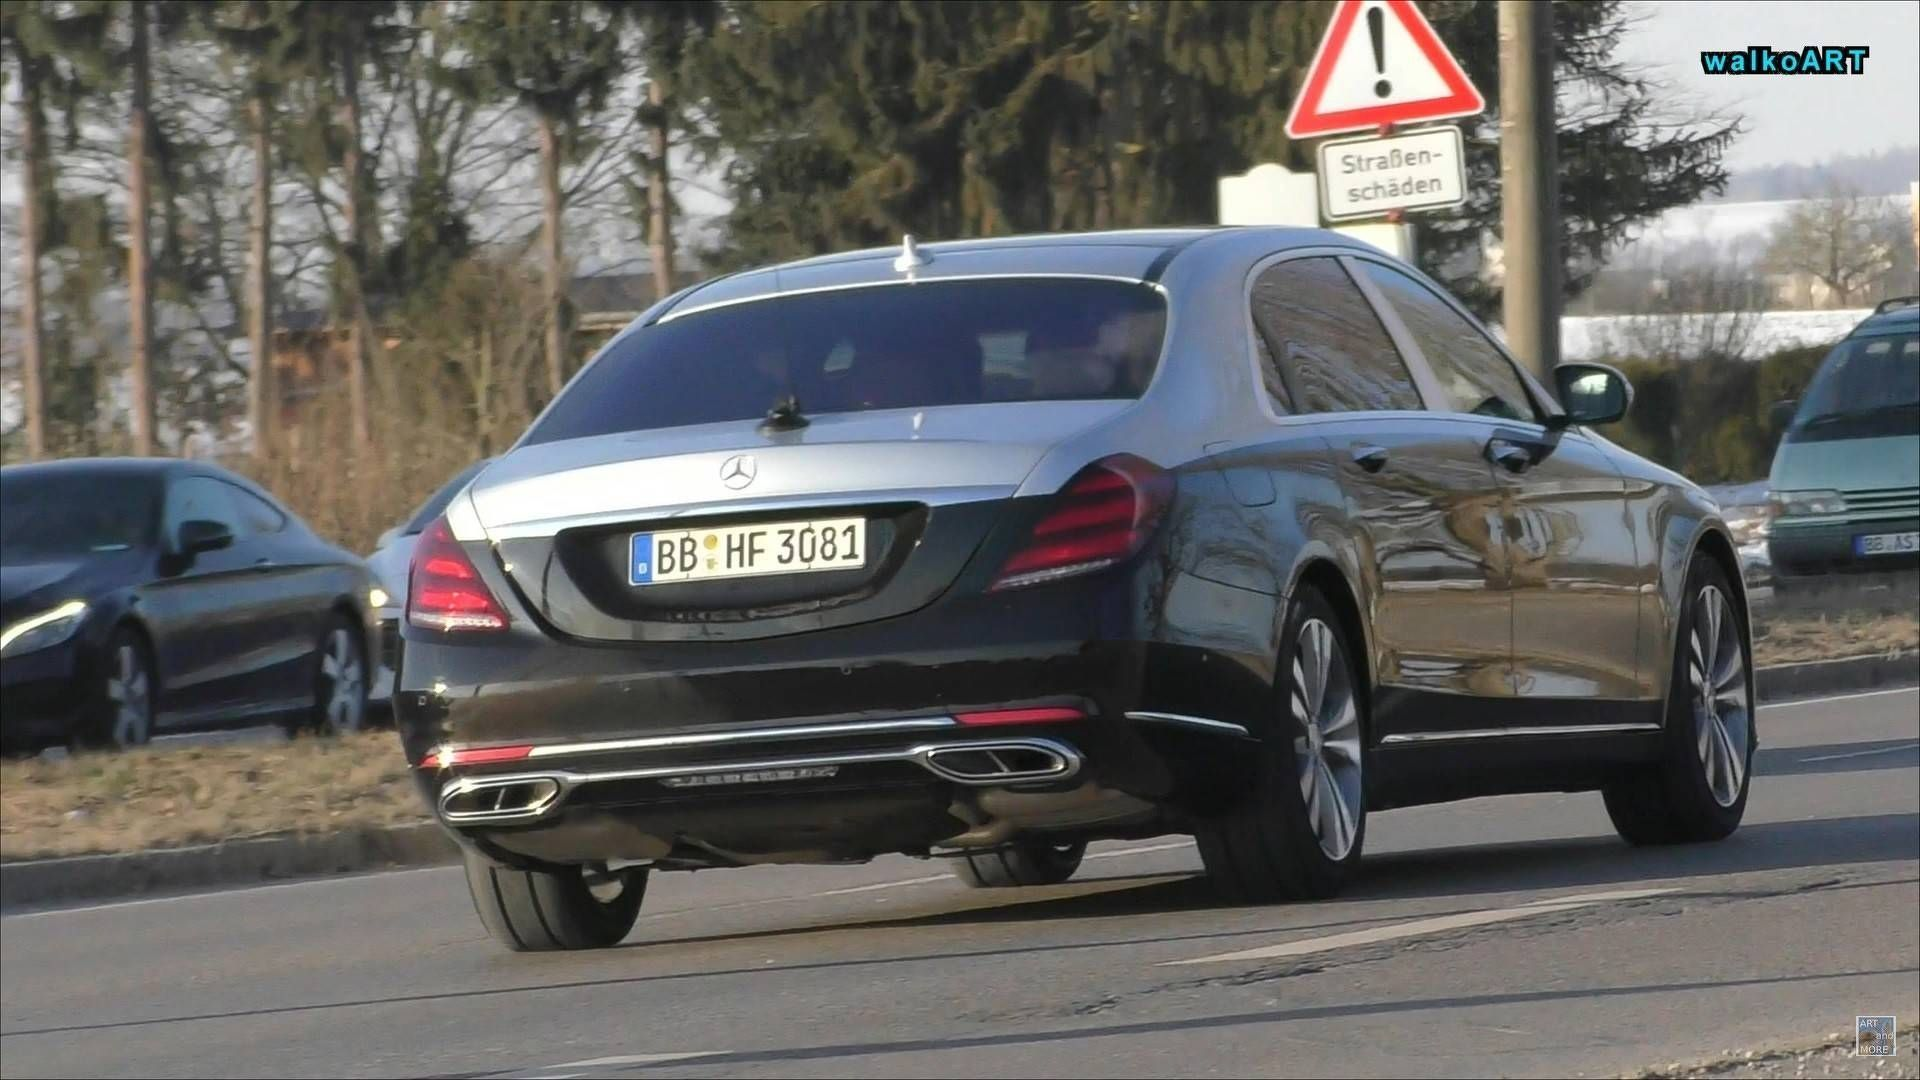 2019 Mercedes Benz S550 Concept Cars Review 2019 Latest Information About Mercedes Cars Release Date Rede